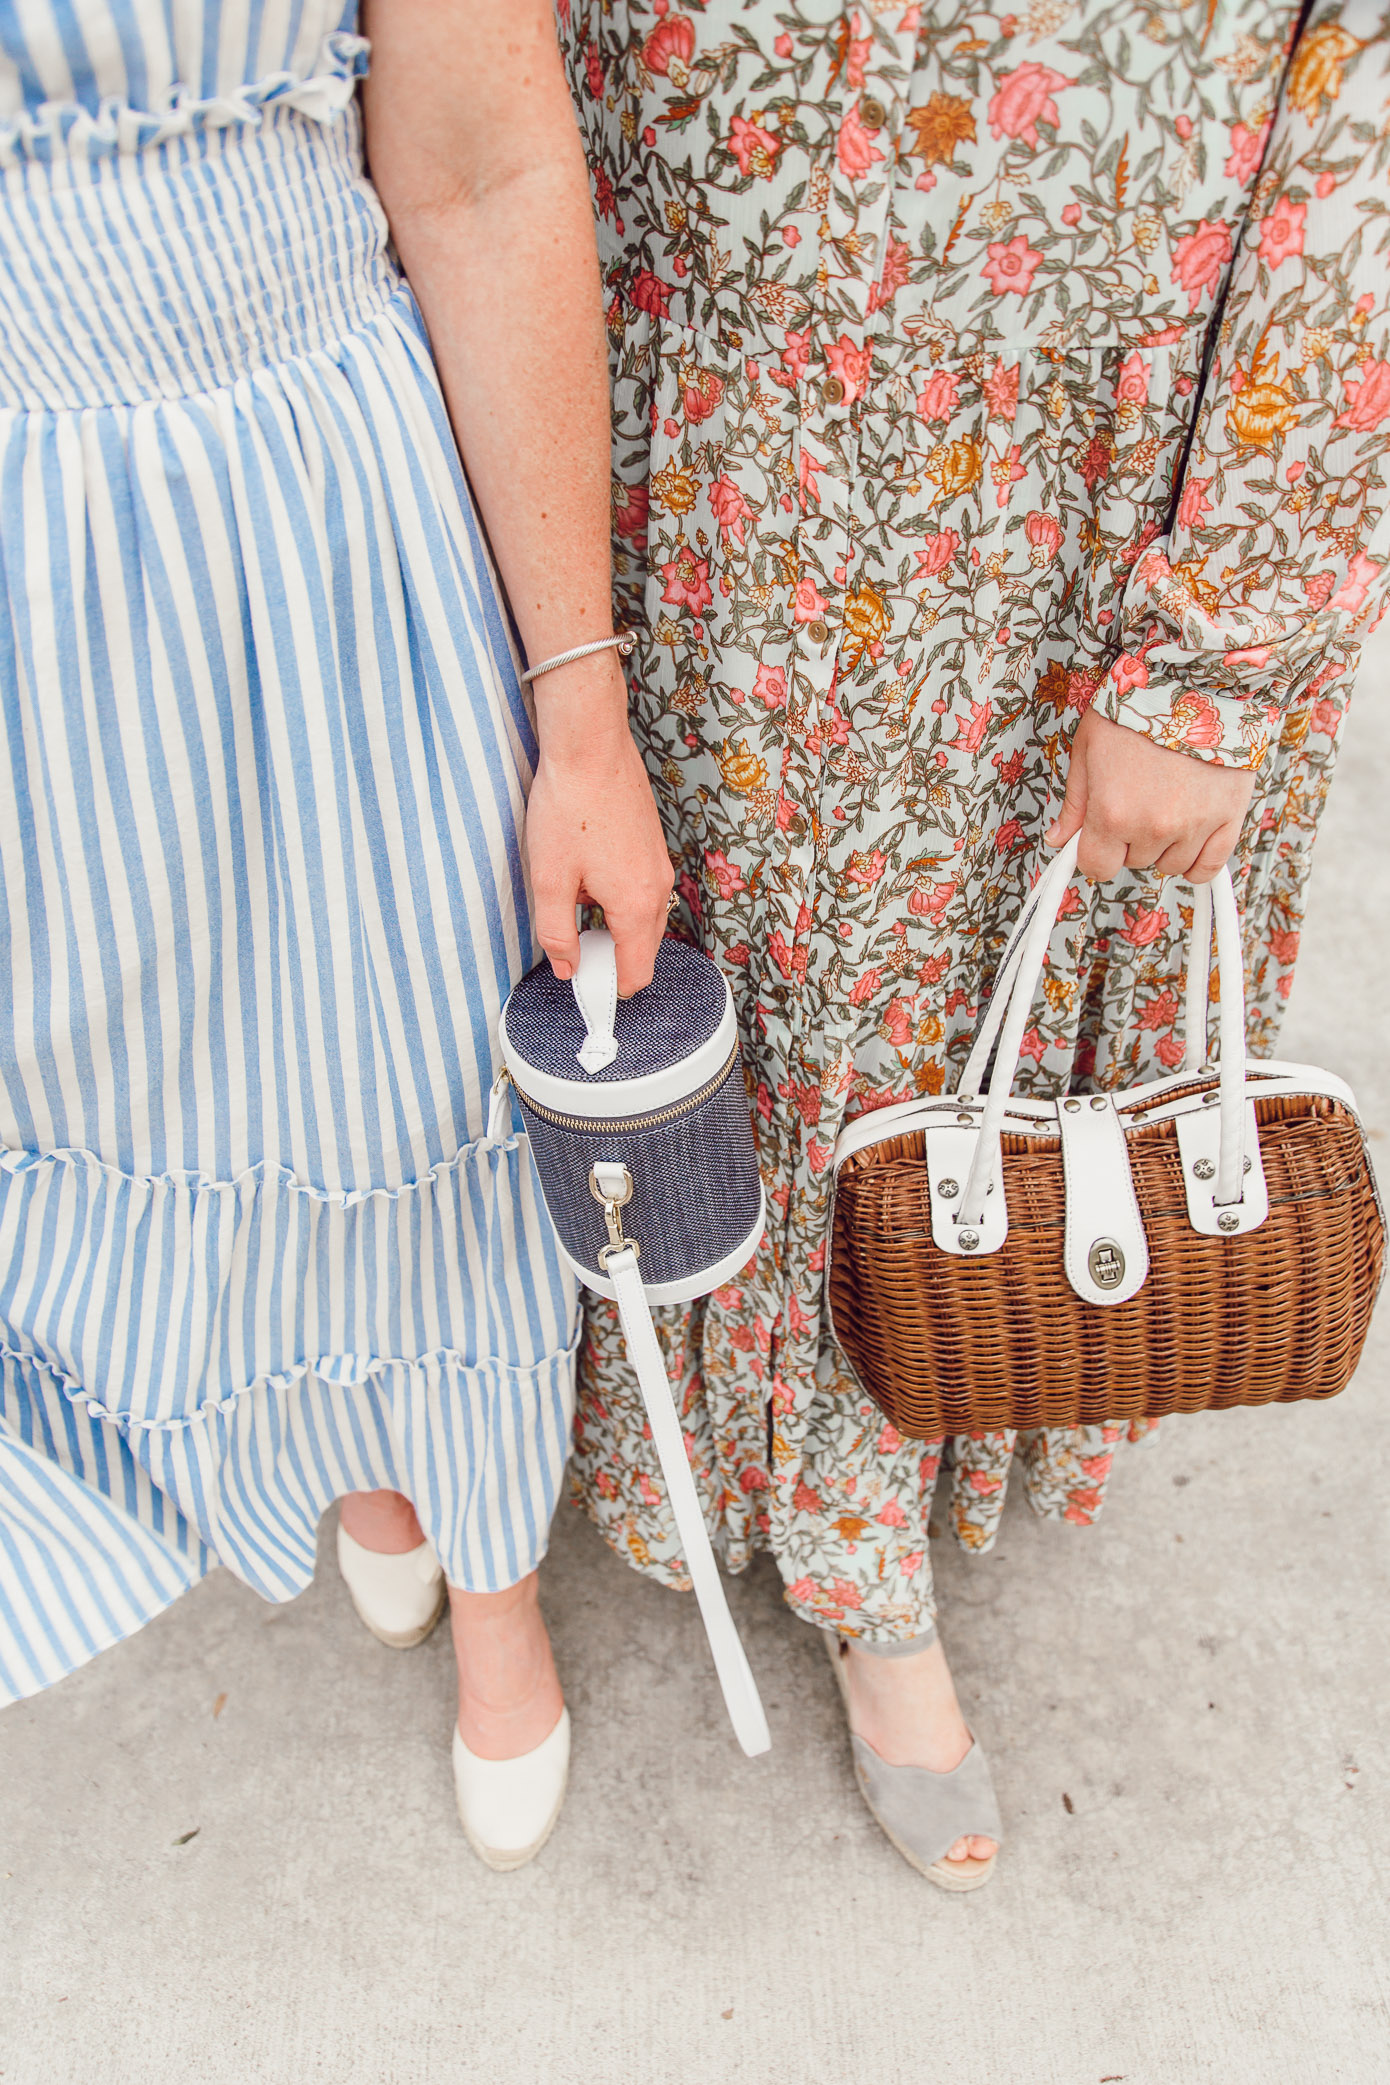 The BEST handbags for Spring 2019 | Ft. Paravel, Patricia Nash Designs | Louella Reese